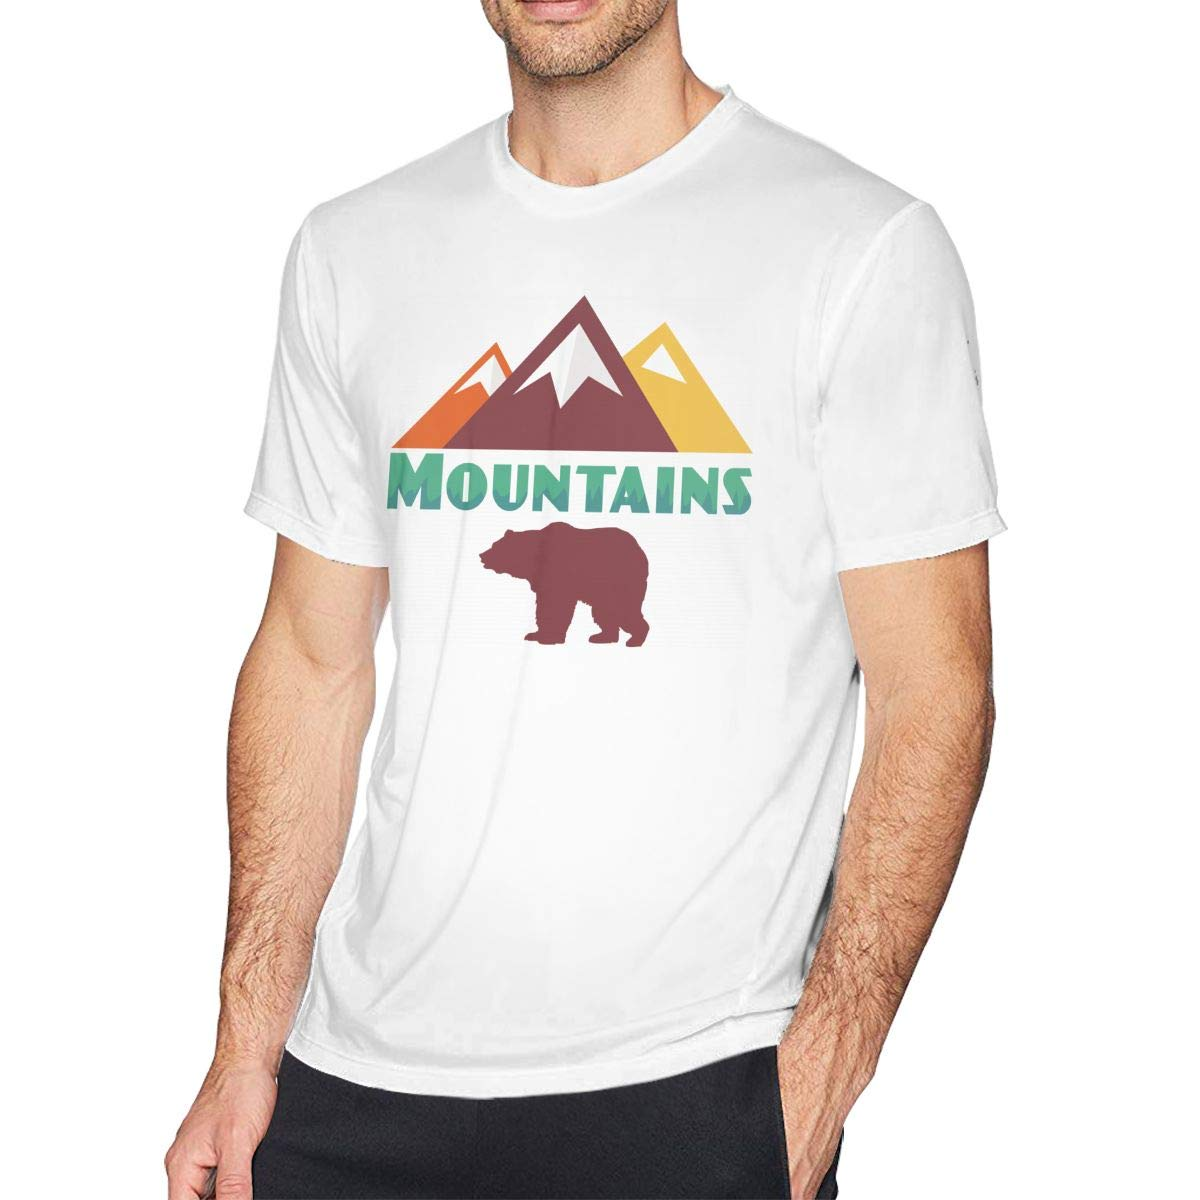 Gonna VVin Mountain Bear Outdoor Casual Shirts for Men New Walking Alone The Horizon T Shirt,Bear Lover T Shirt Loose Comfort Soft White